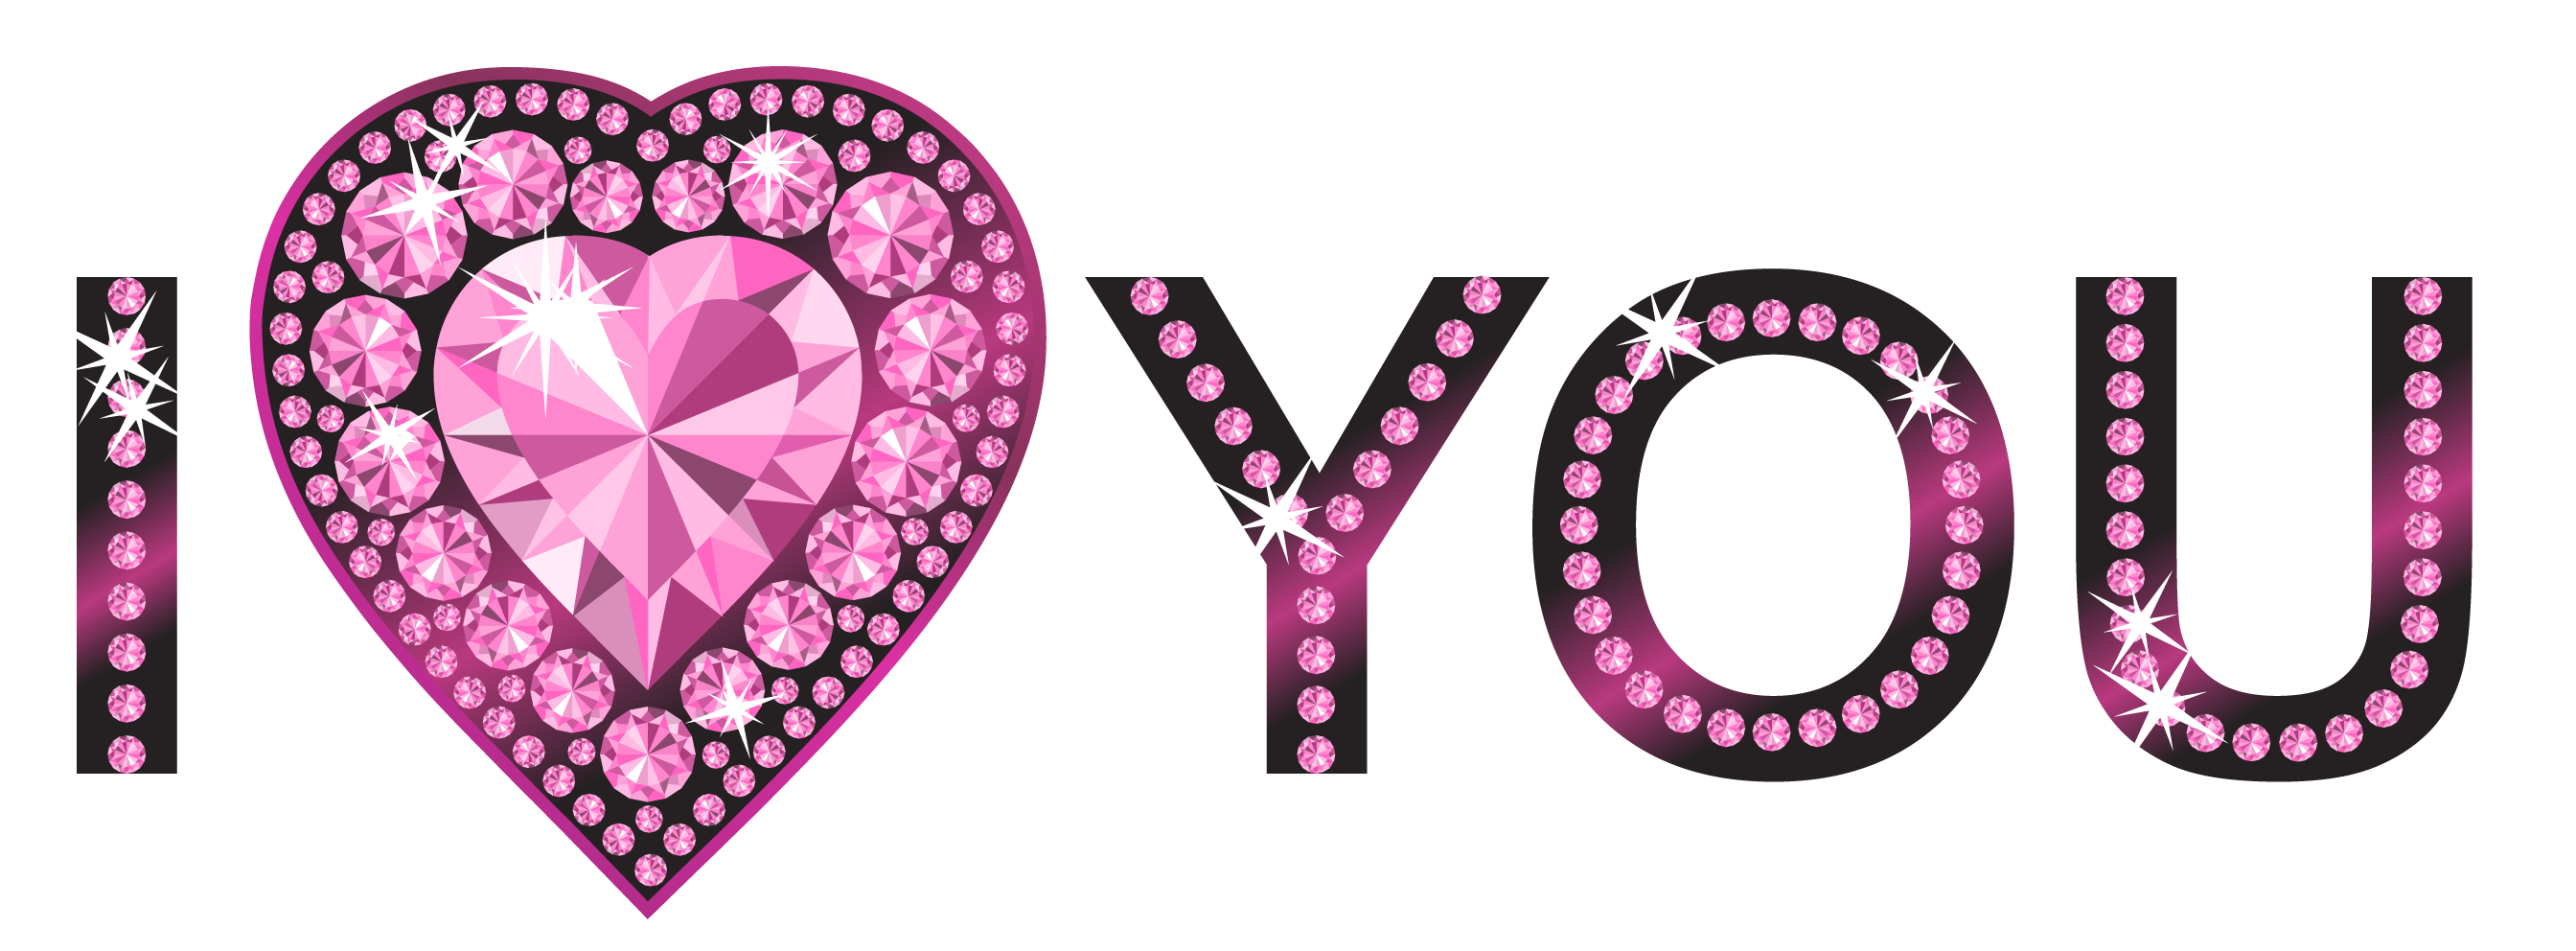 love you png transparent images png only #25819